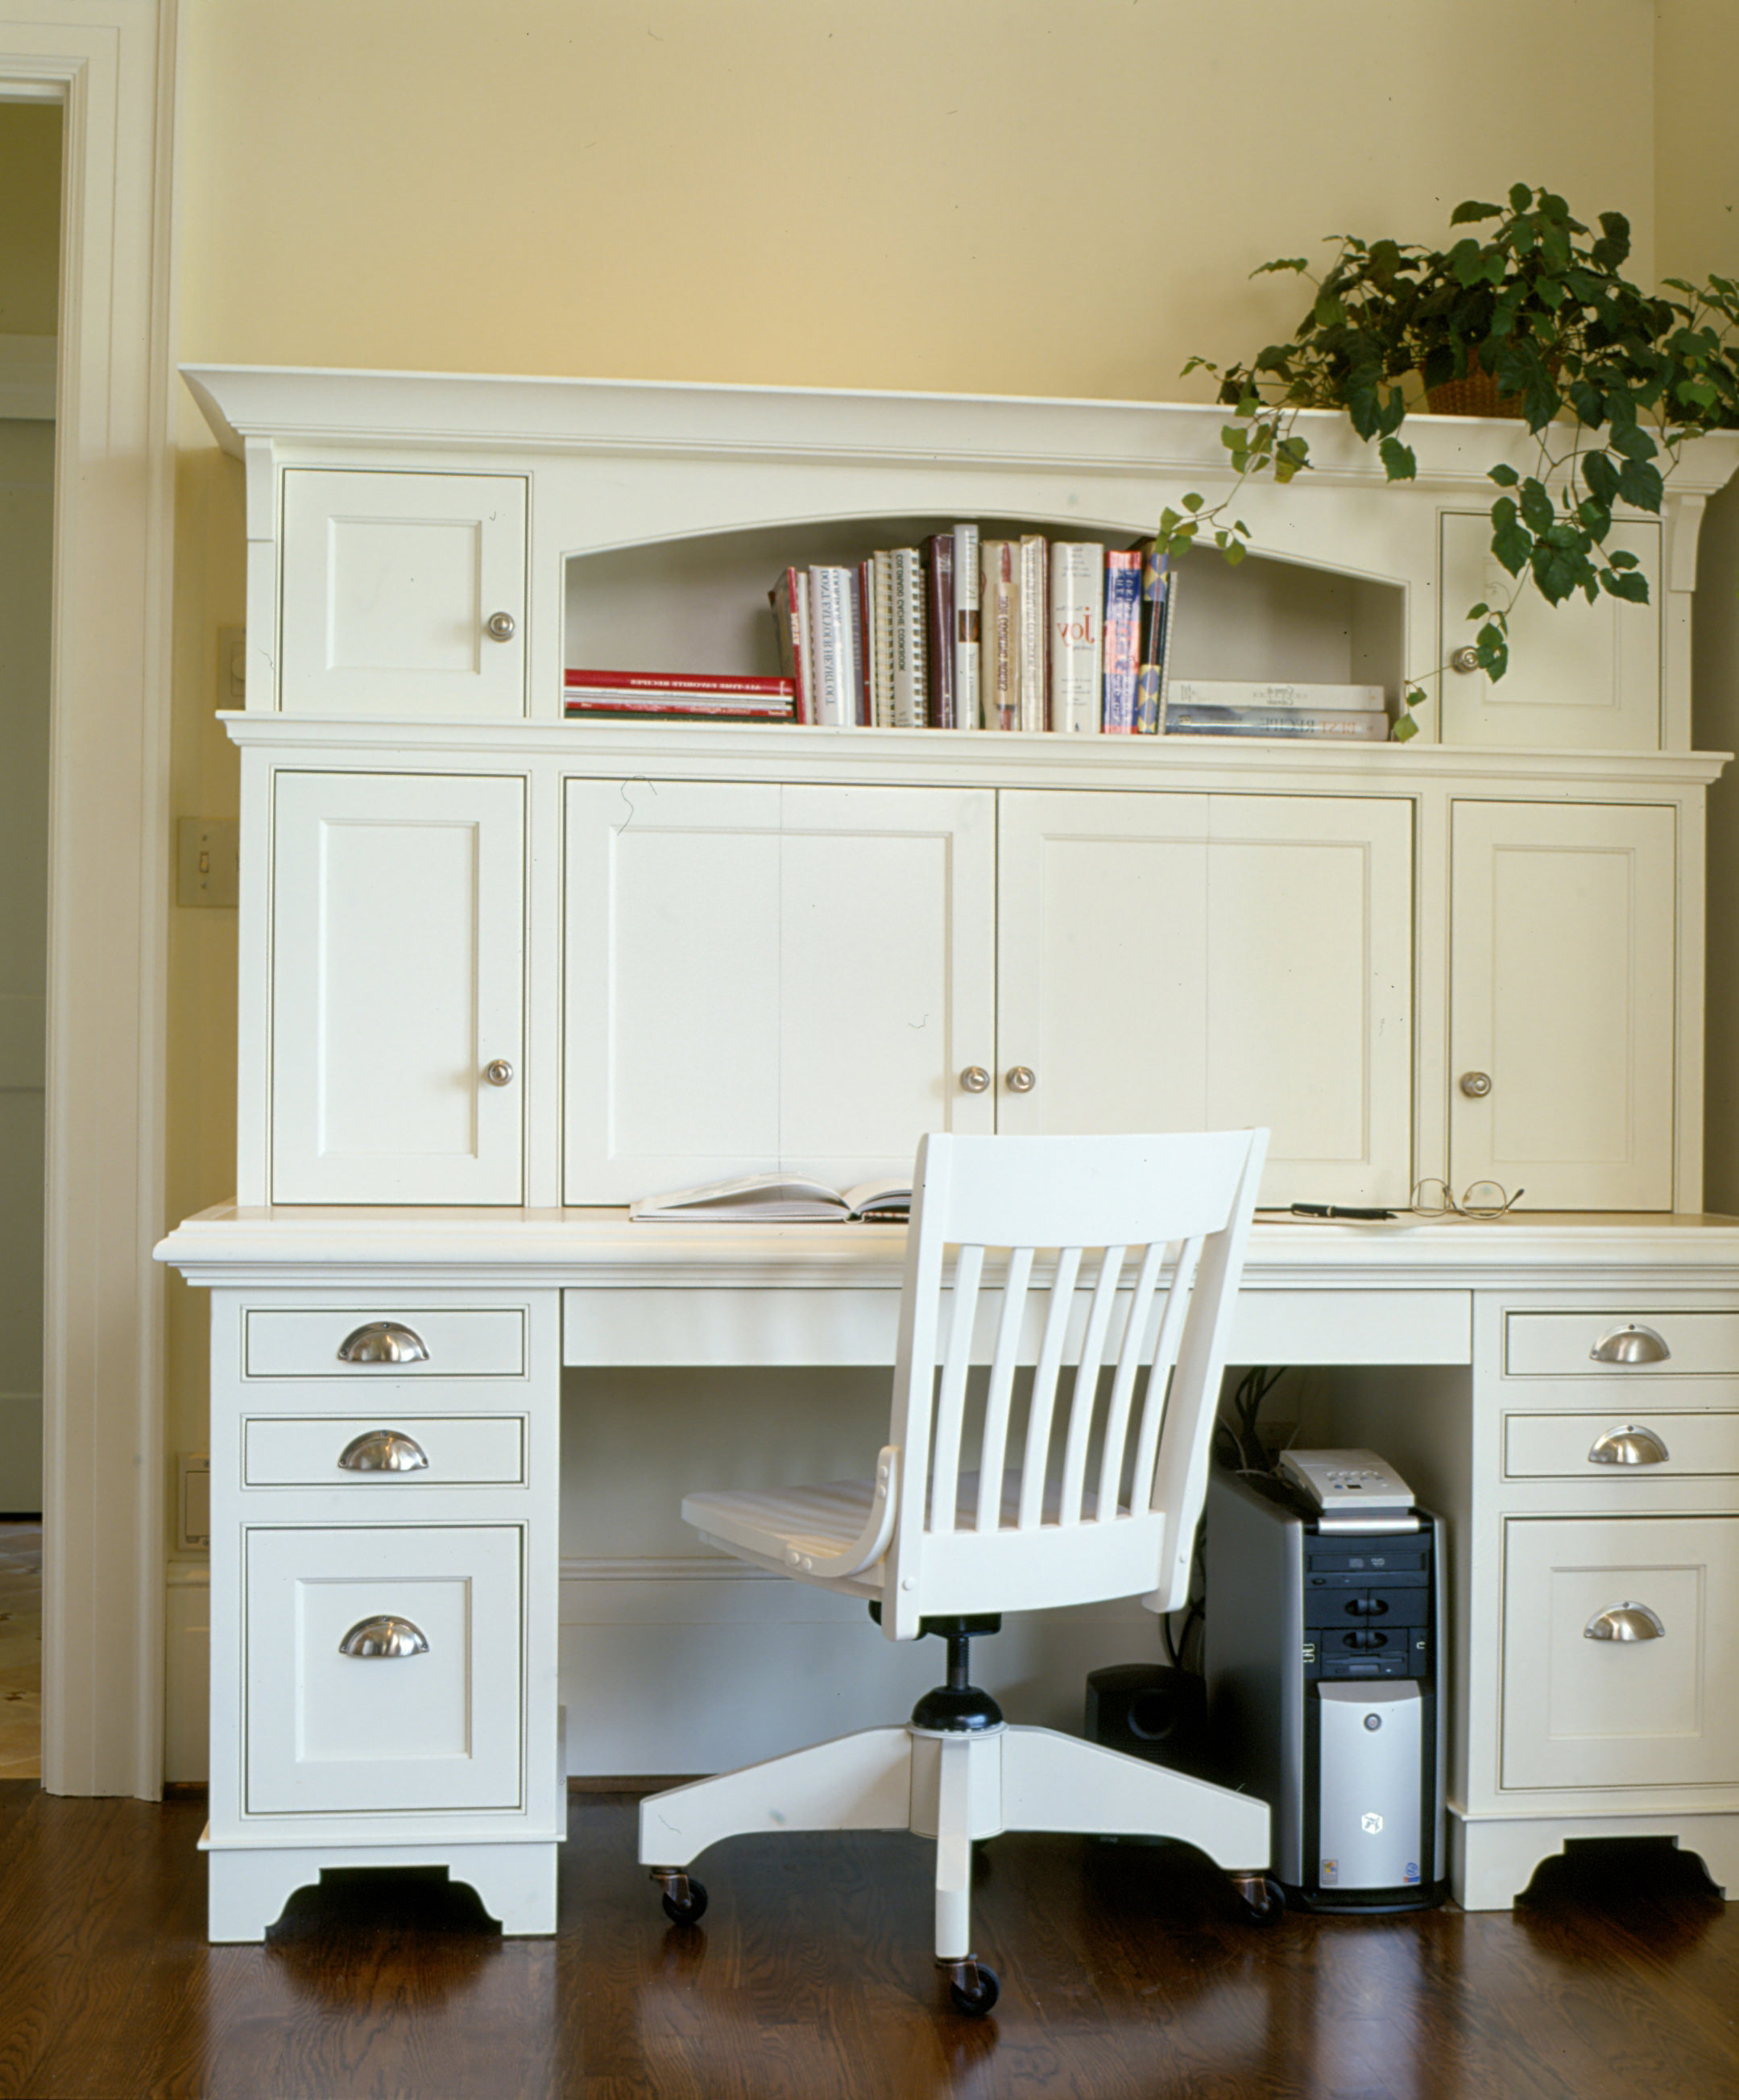 kitchen cabinet outlet southington ct. Black Bedroom Furniture Sets. Home Design Ideas